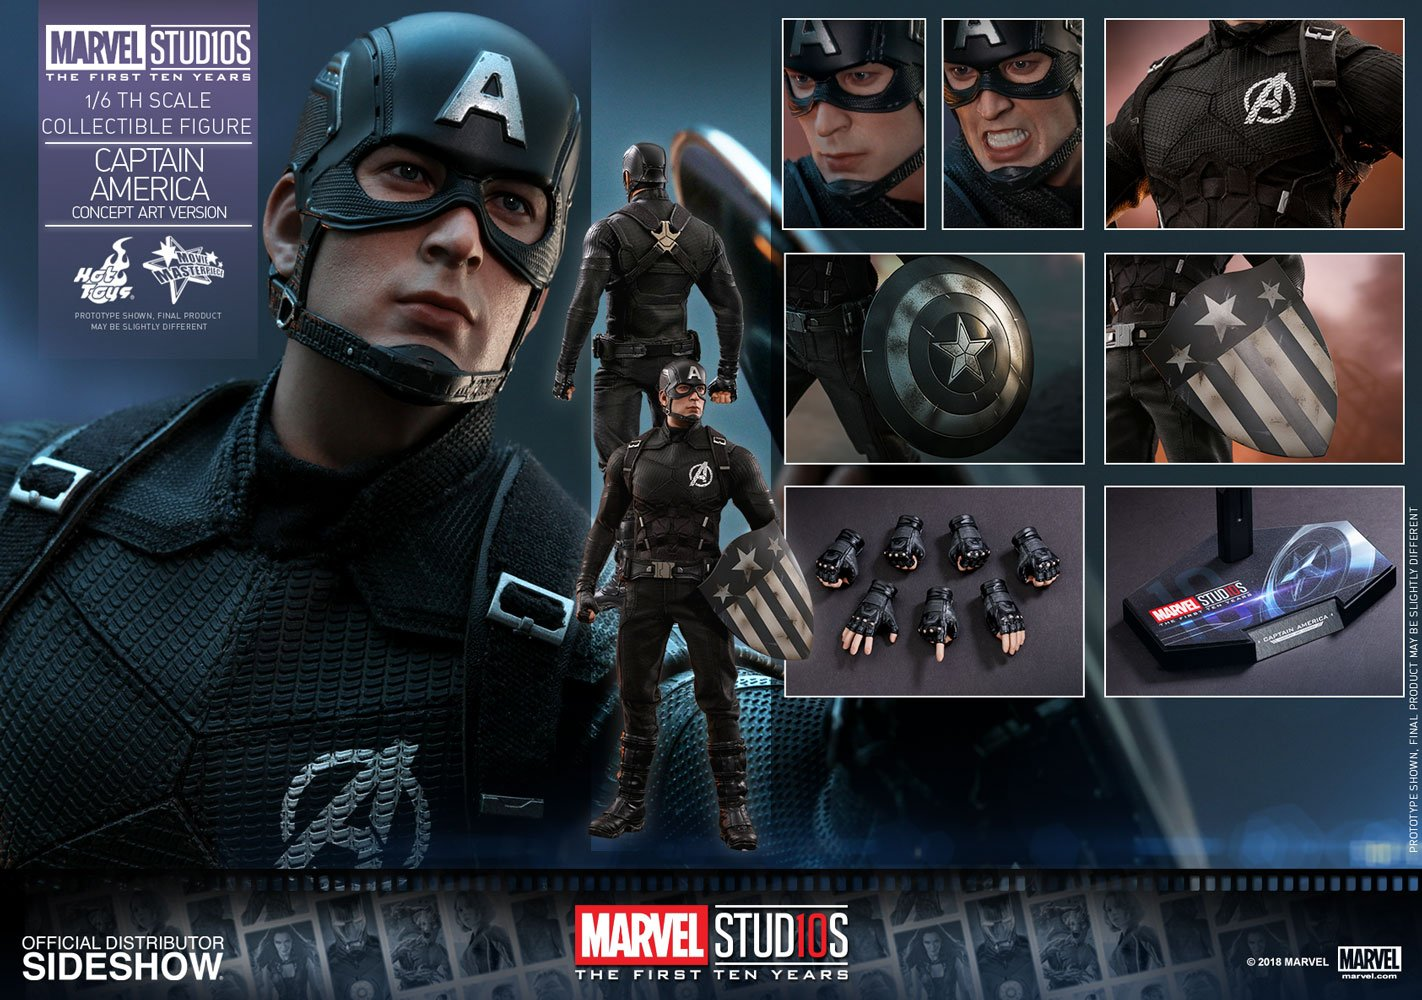 captain-america-concept-art-version_marvel_gallery_5ca78de0acc6d.jpg